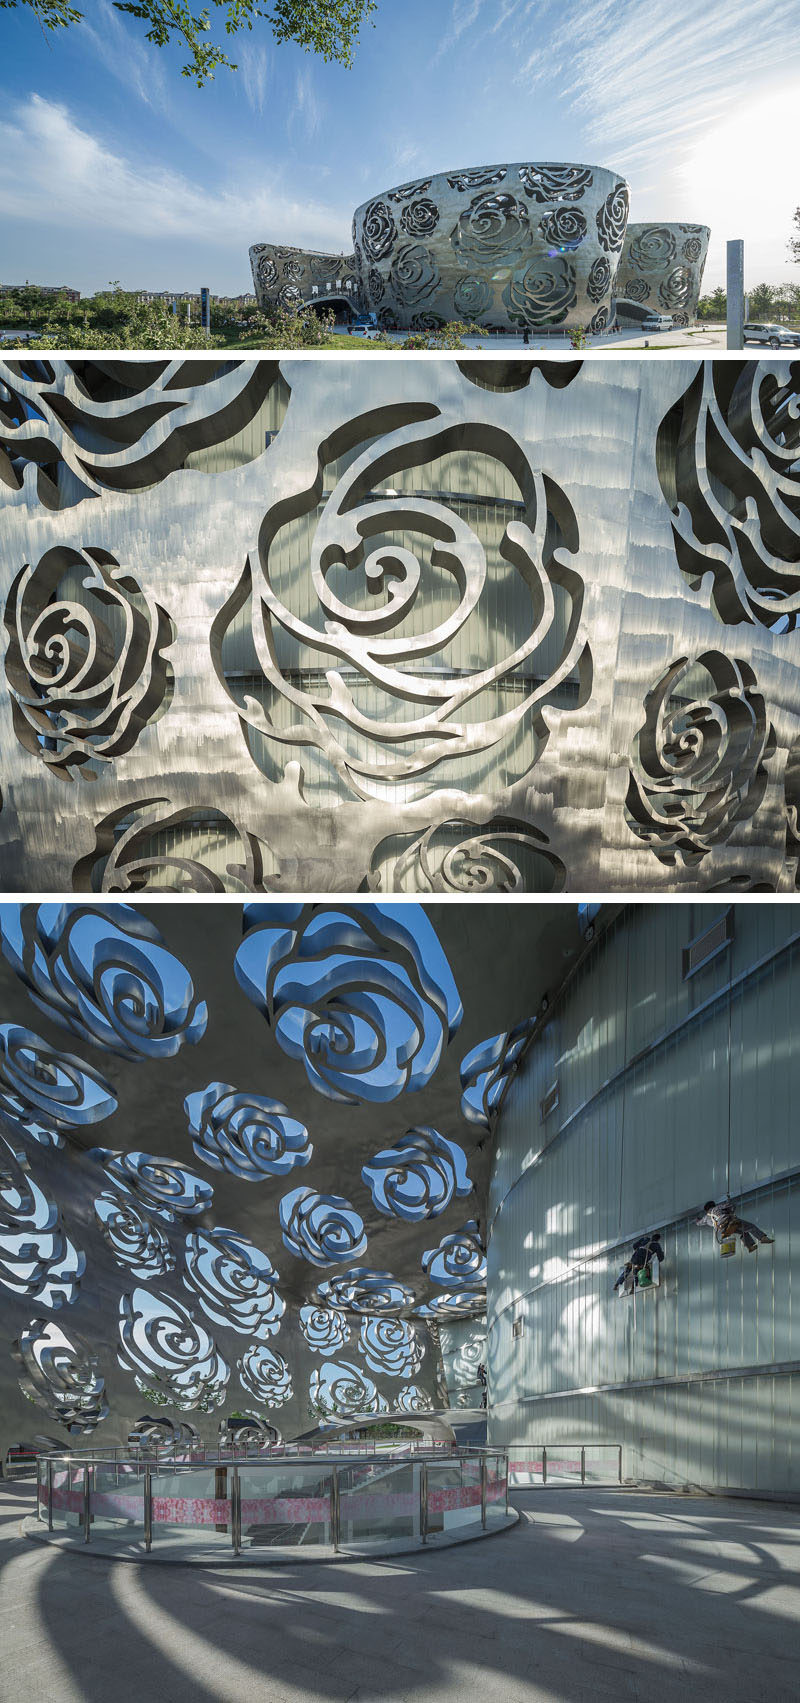 The world's first Rose Museum has opened in Beijing, China, and it's covered by a stainless steel facade that measures in at 984 ft (300m) long and 55ft (17m) high and is perforated by a rose-shaped pattern.